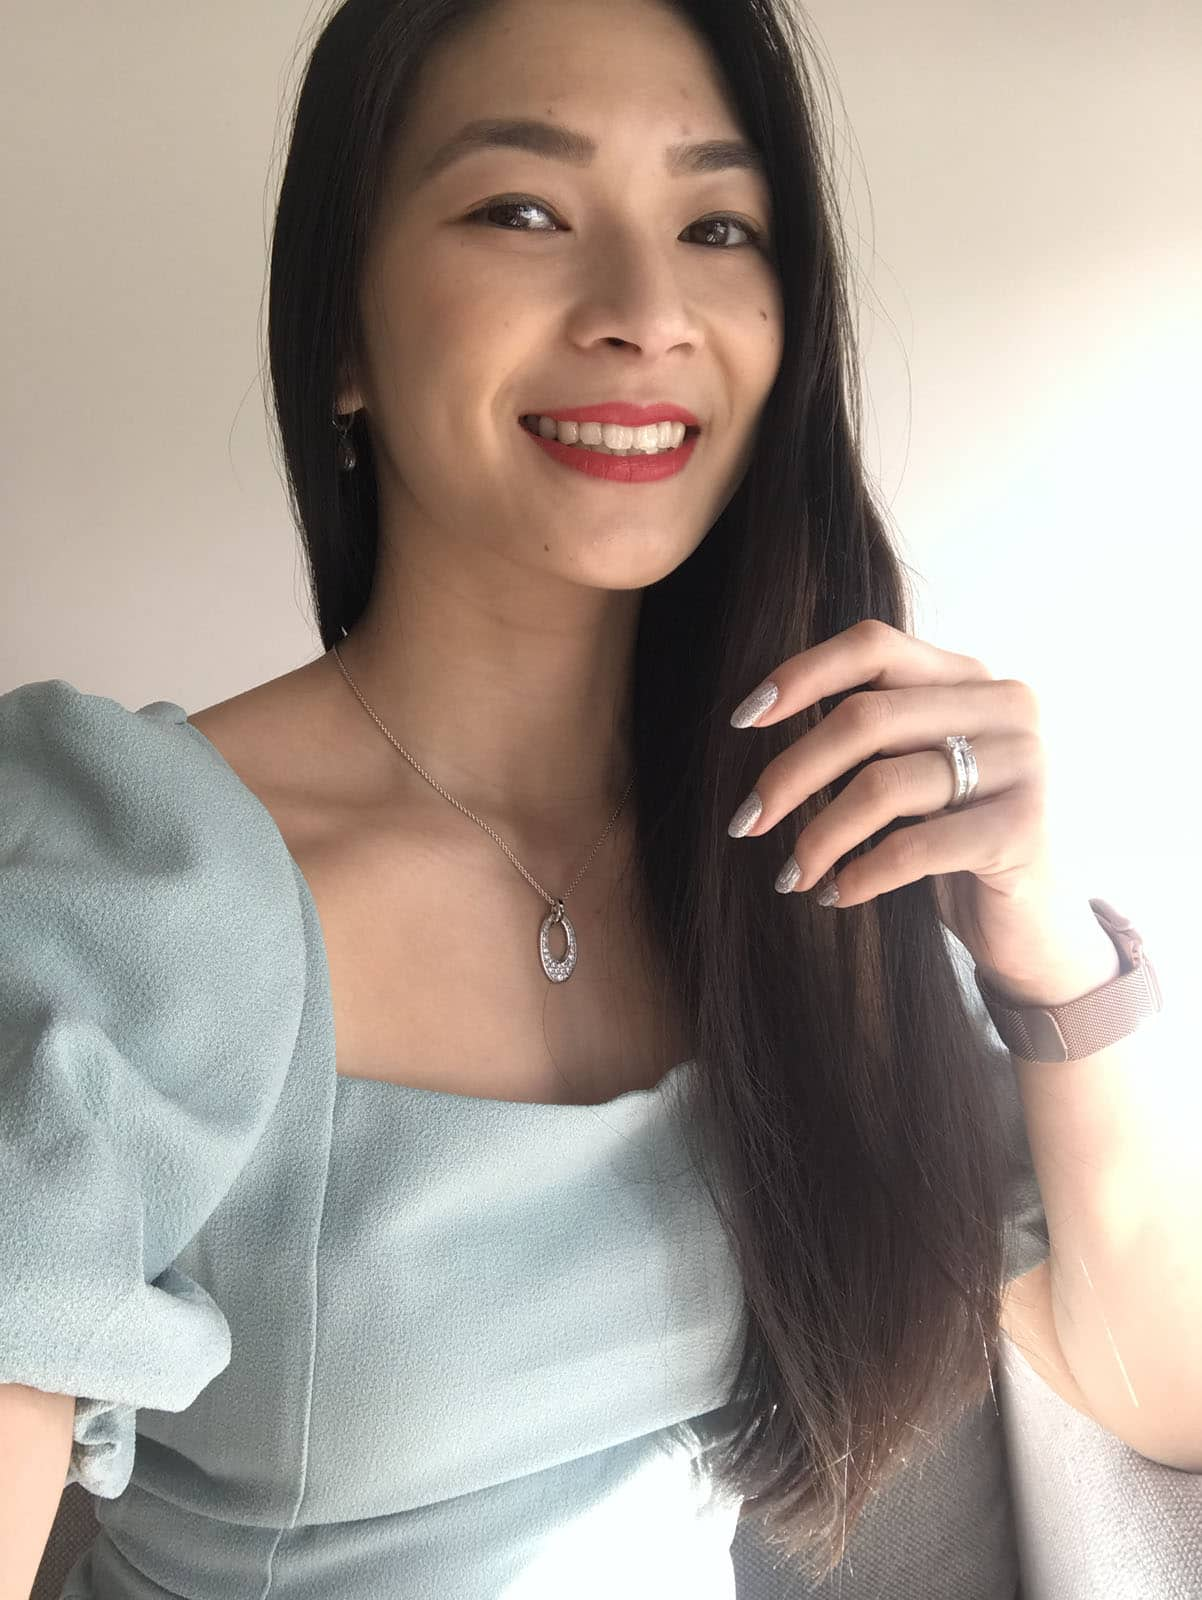 A selfie of a woman with long dark hair, wearing a light seafoam green outfit, with red lipstick on. She is also wearing silver jewellery